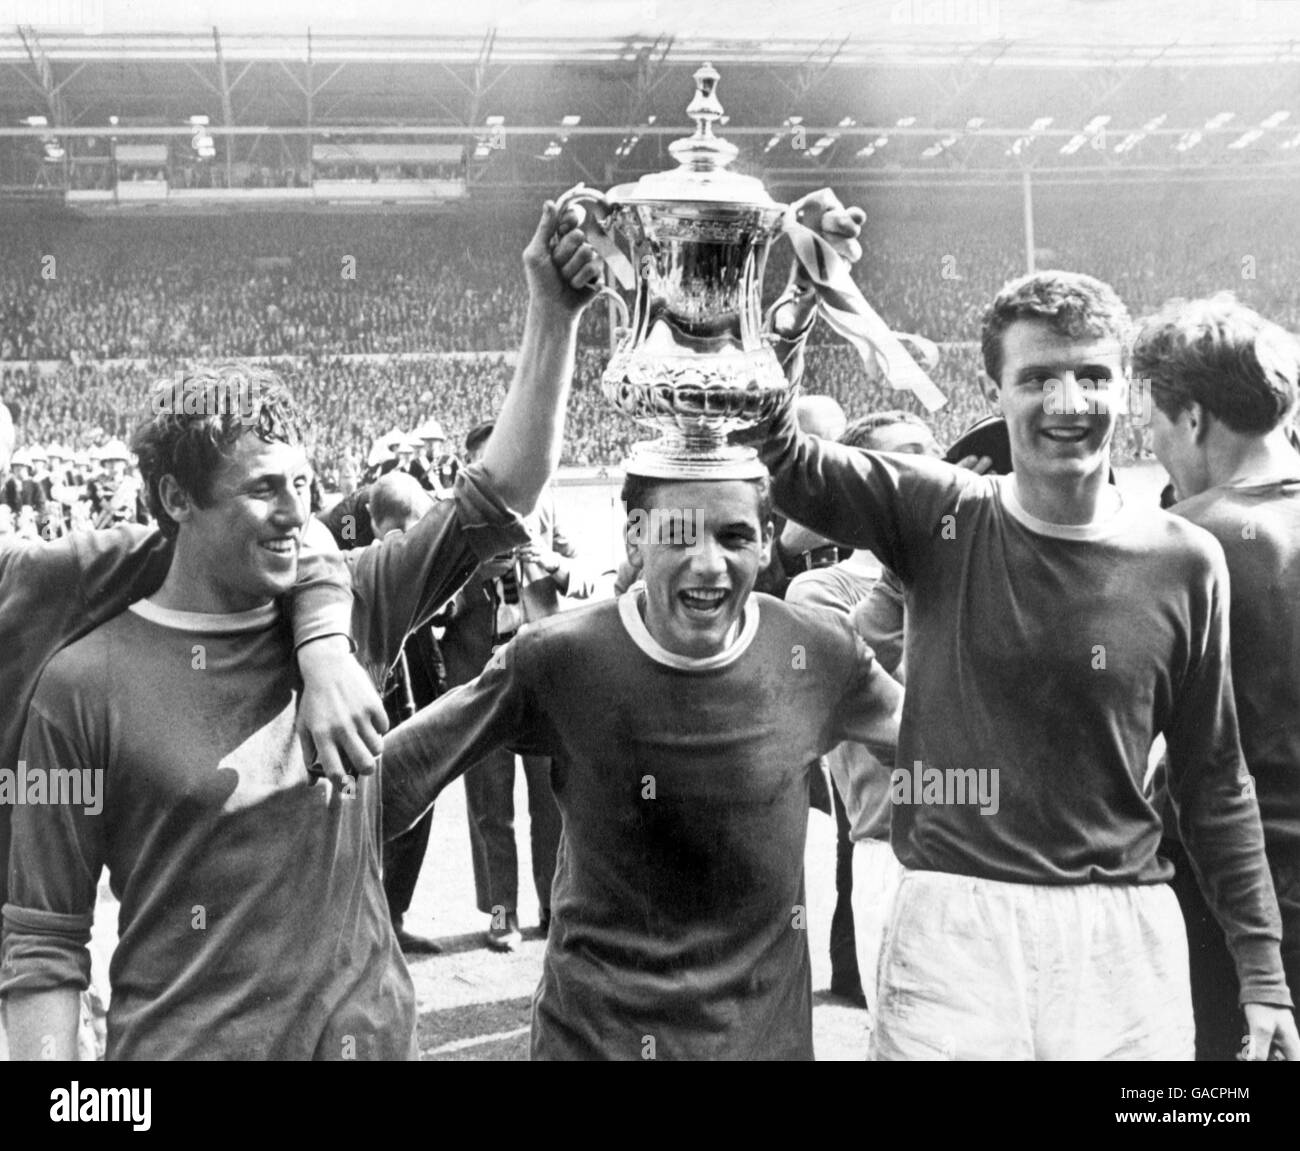 Soccer - FA Cup - Final - Everton v Sheffield Wednesday - Stock Image